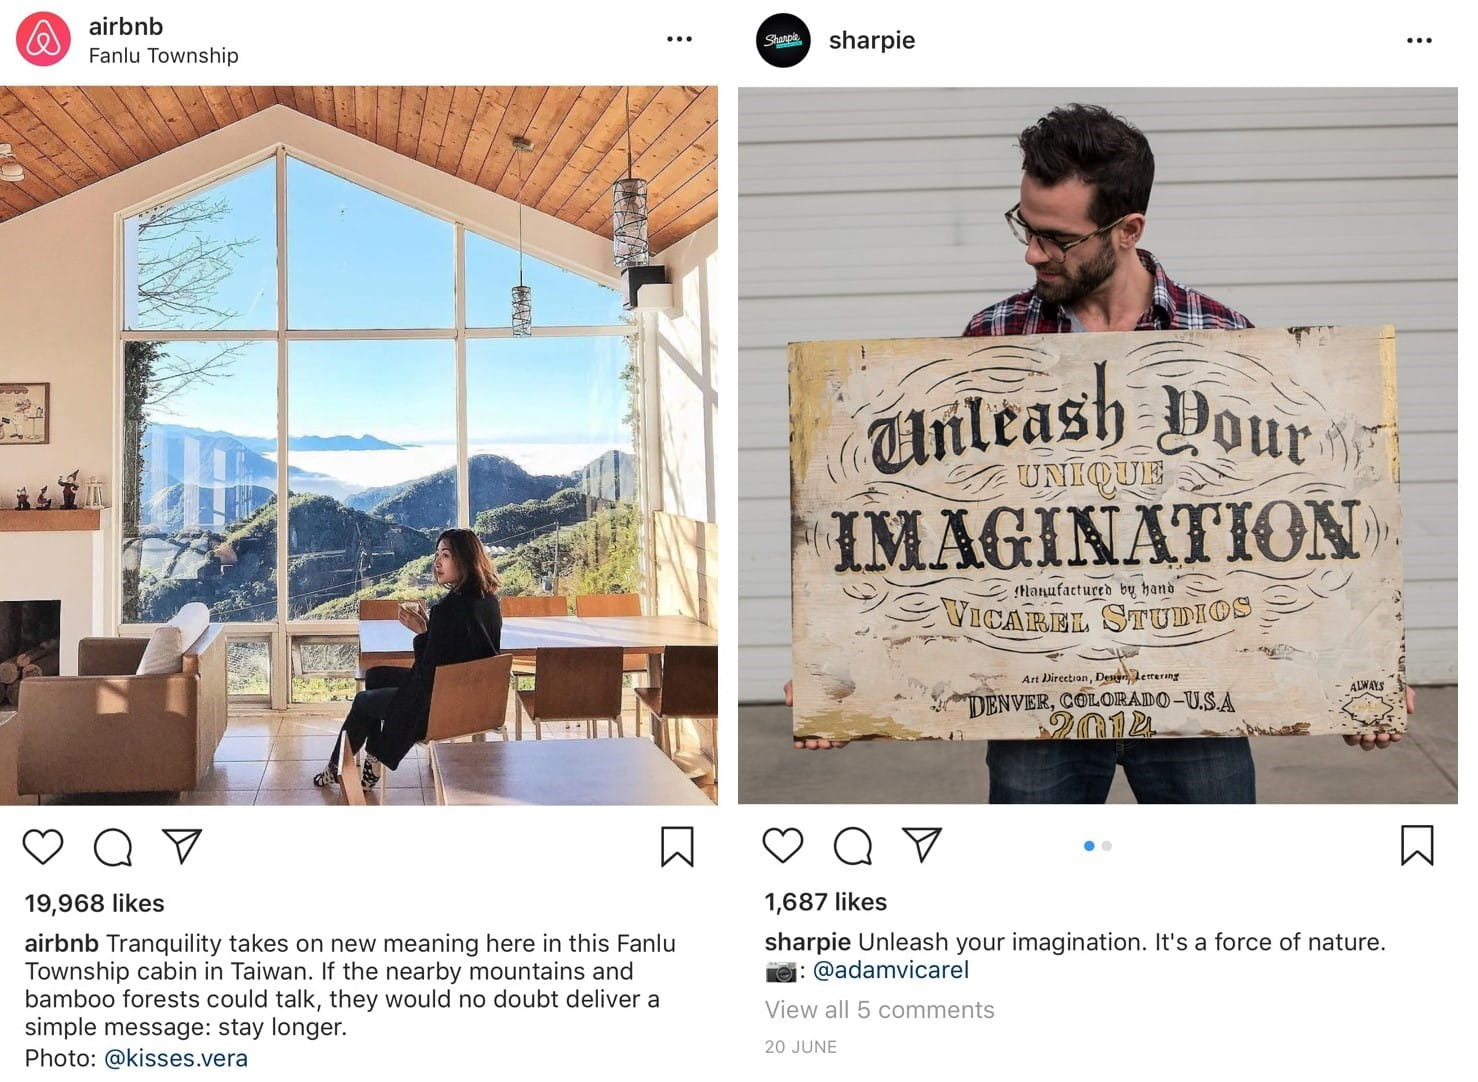 User-generated content examples on Instagram from Airbnb and Sharpie